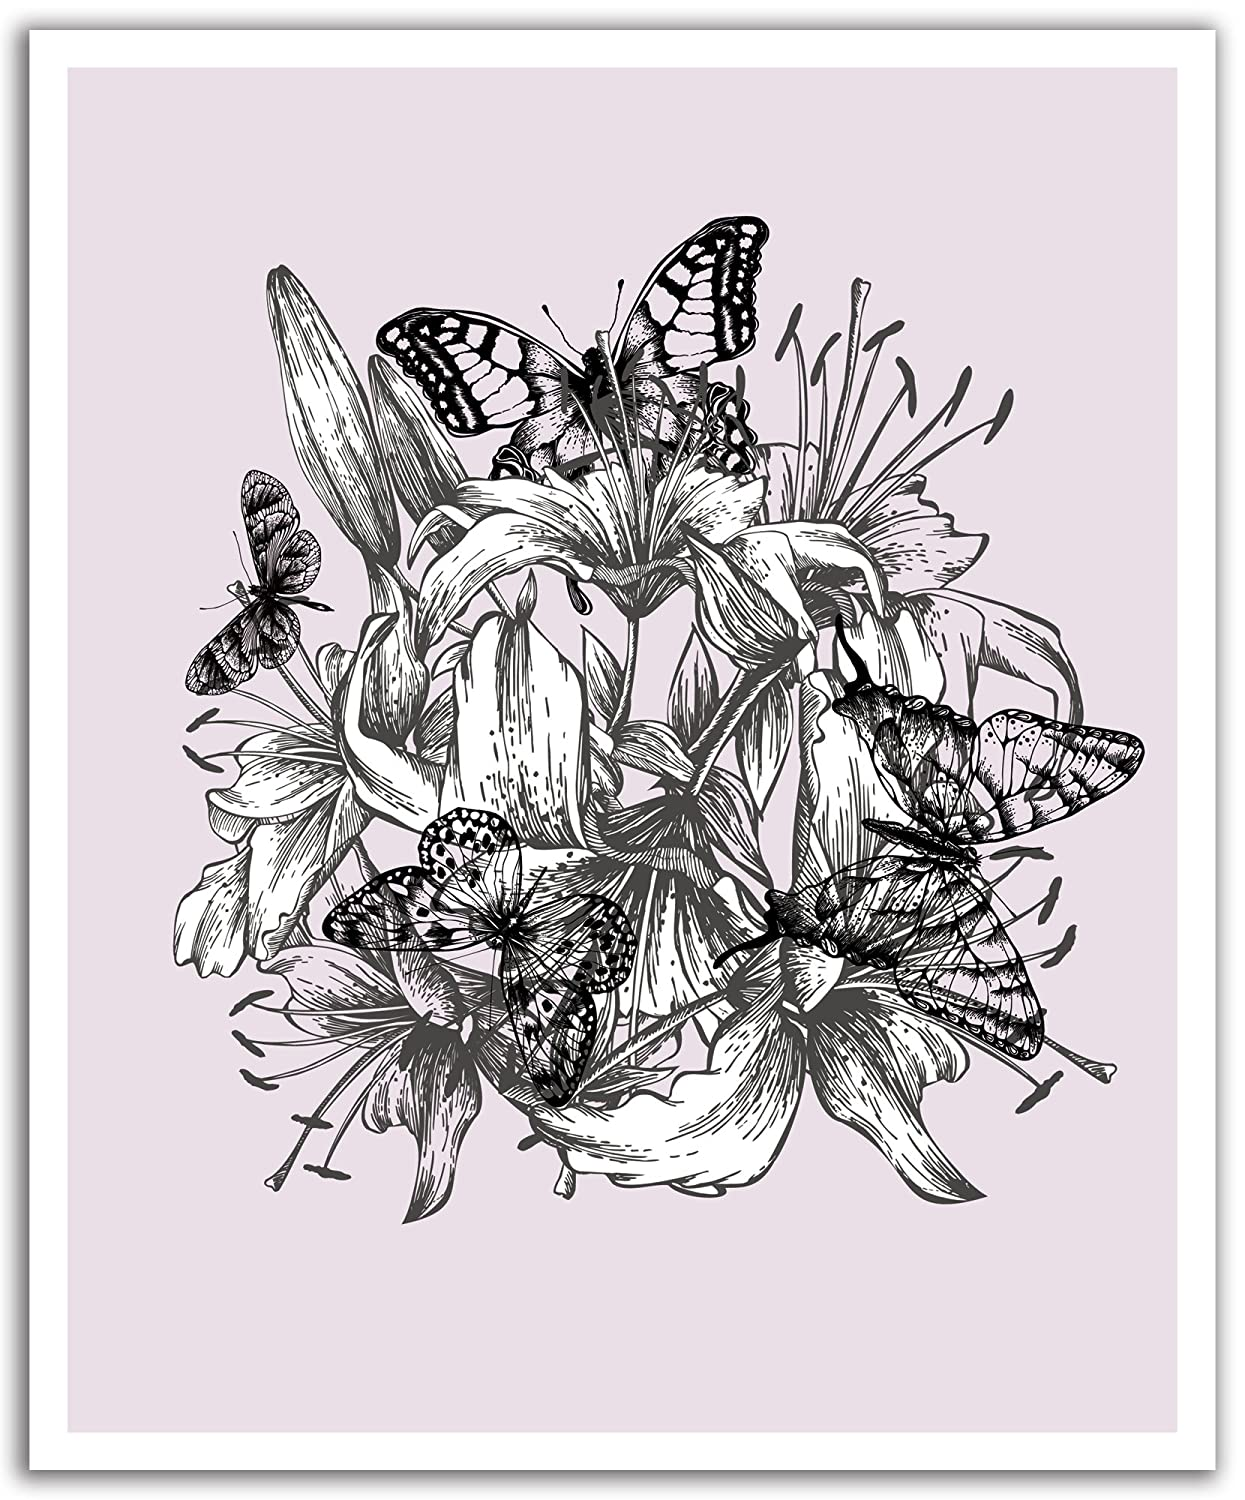 JP London POS2428 uStrip Peel and Stick Removable Wall Decal Sticker Mural Butterfly Dream Sketch Flower, 19.75-Inch by 24-Inch sketch machine wall sticker